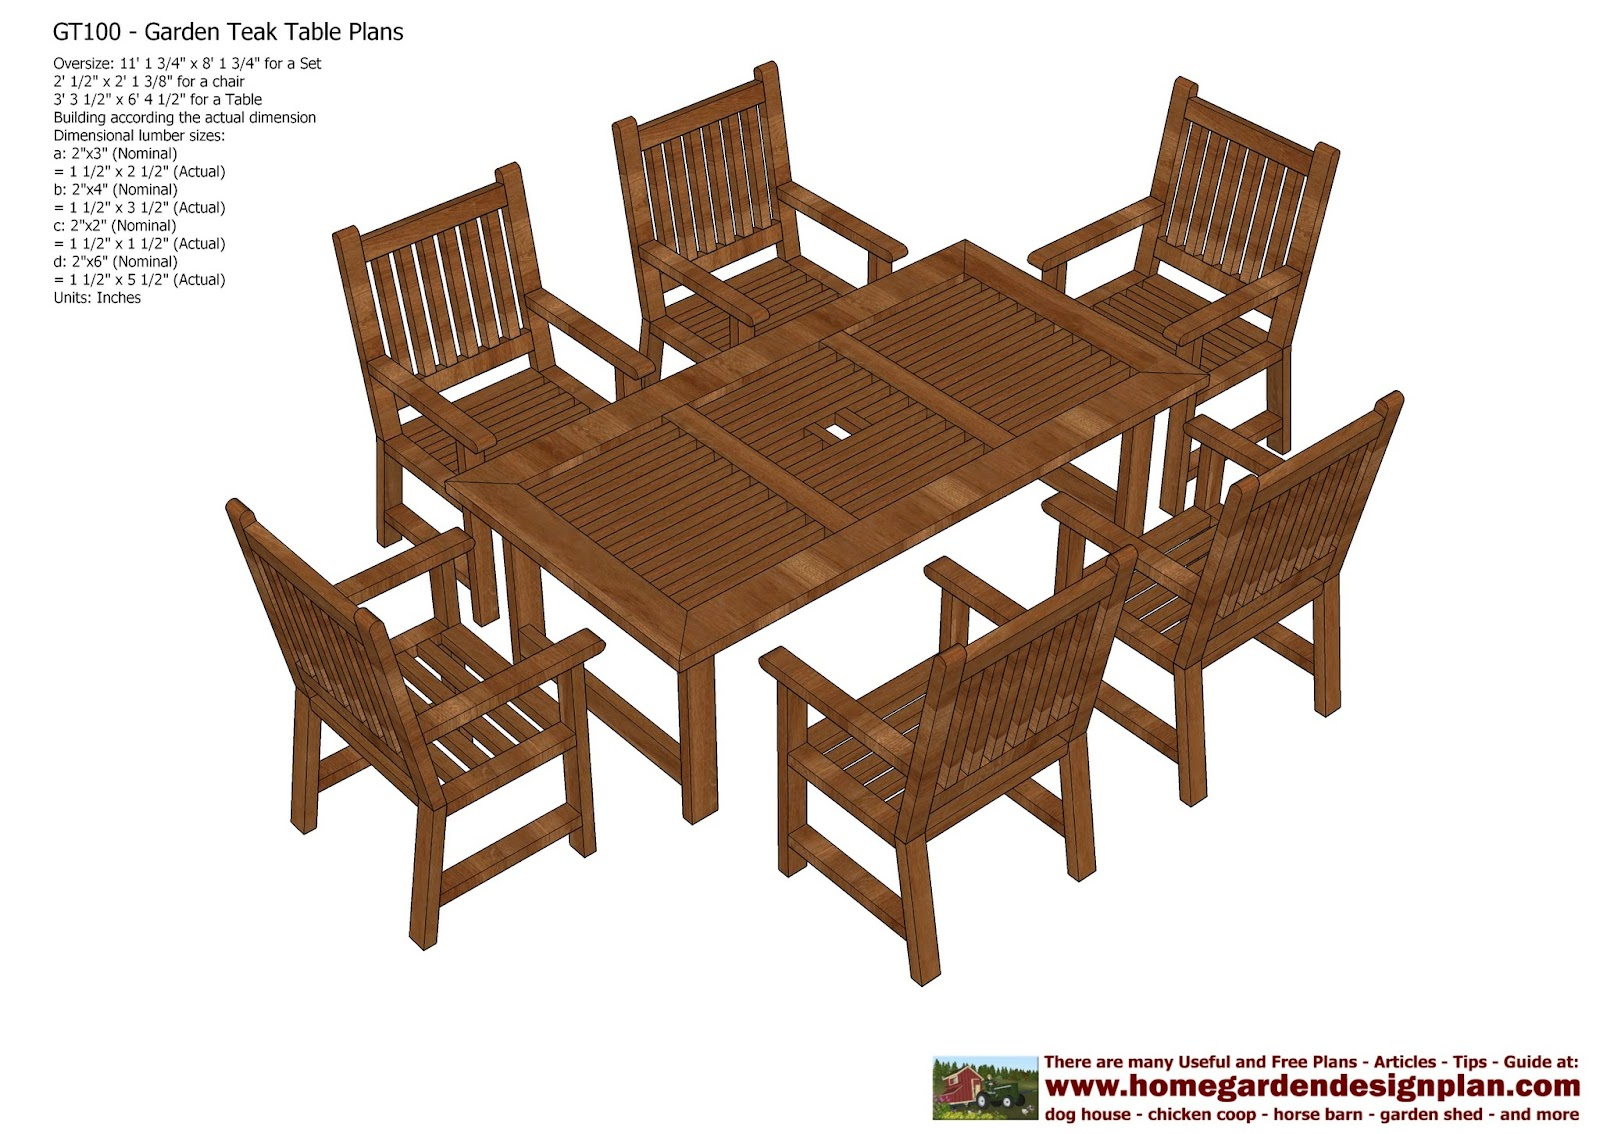 Home garden plans gt teak tables